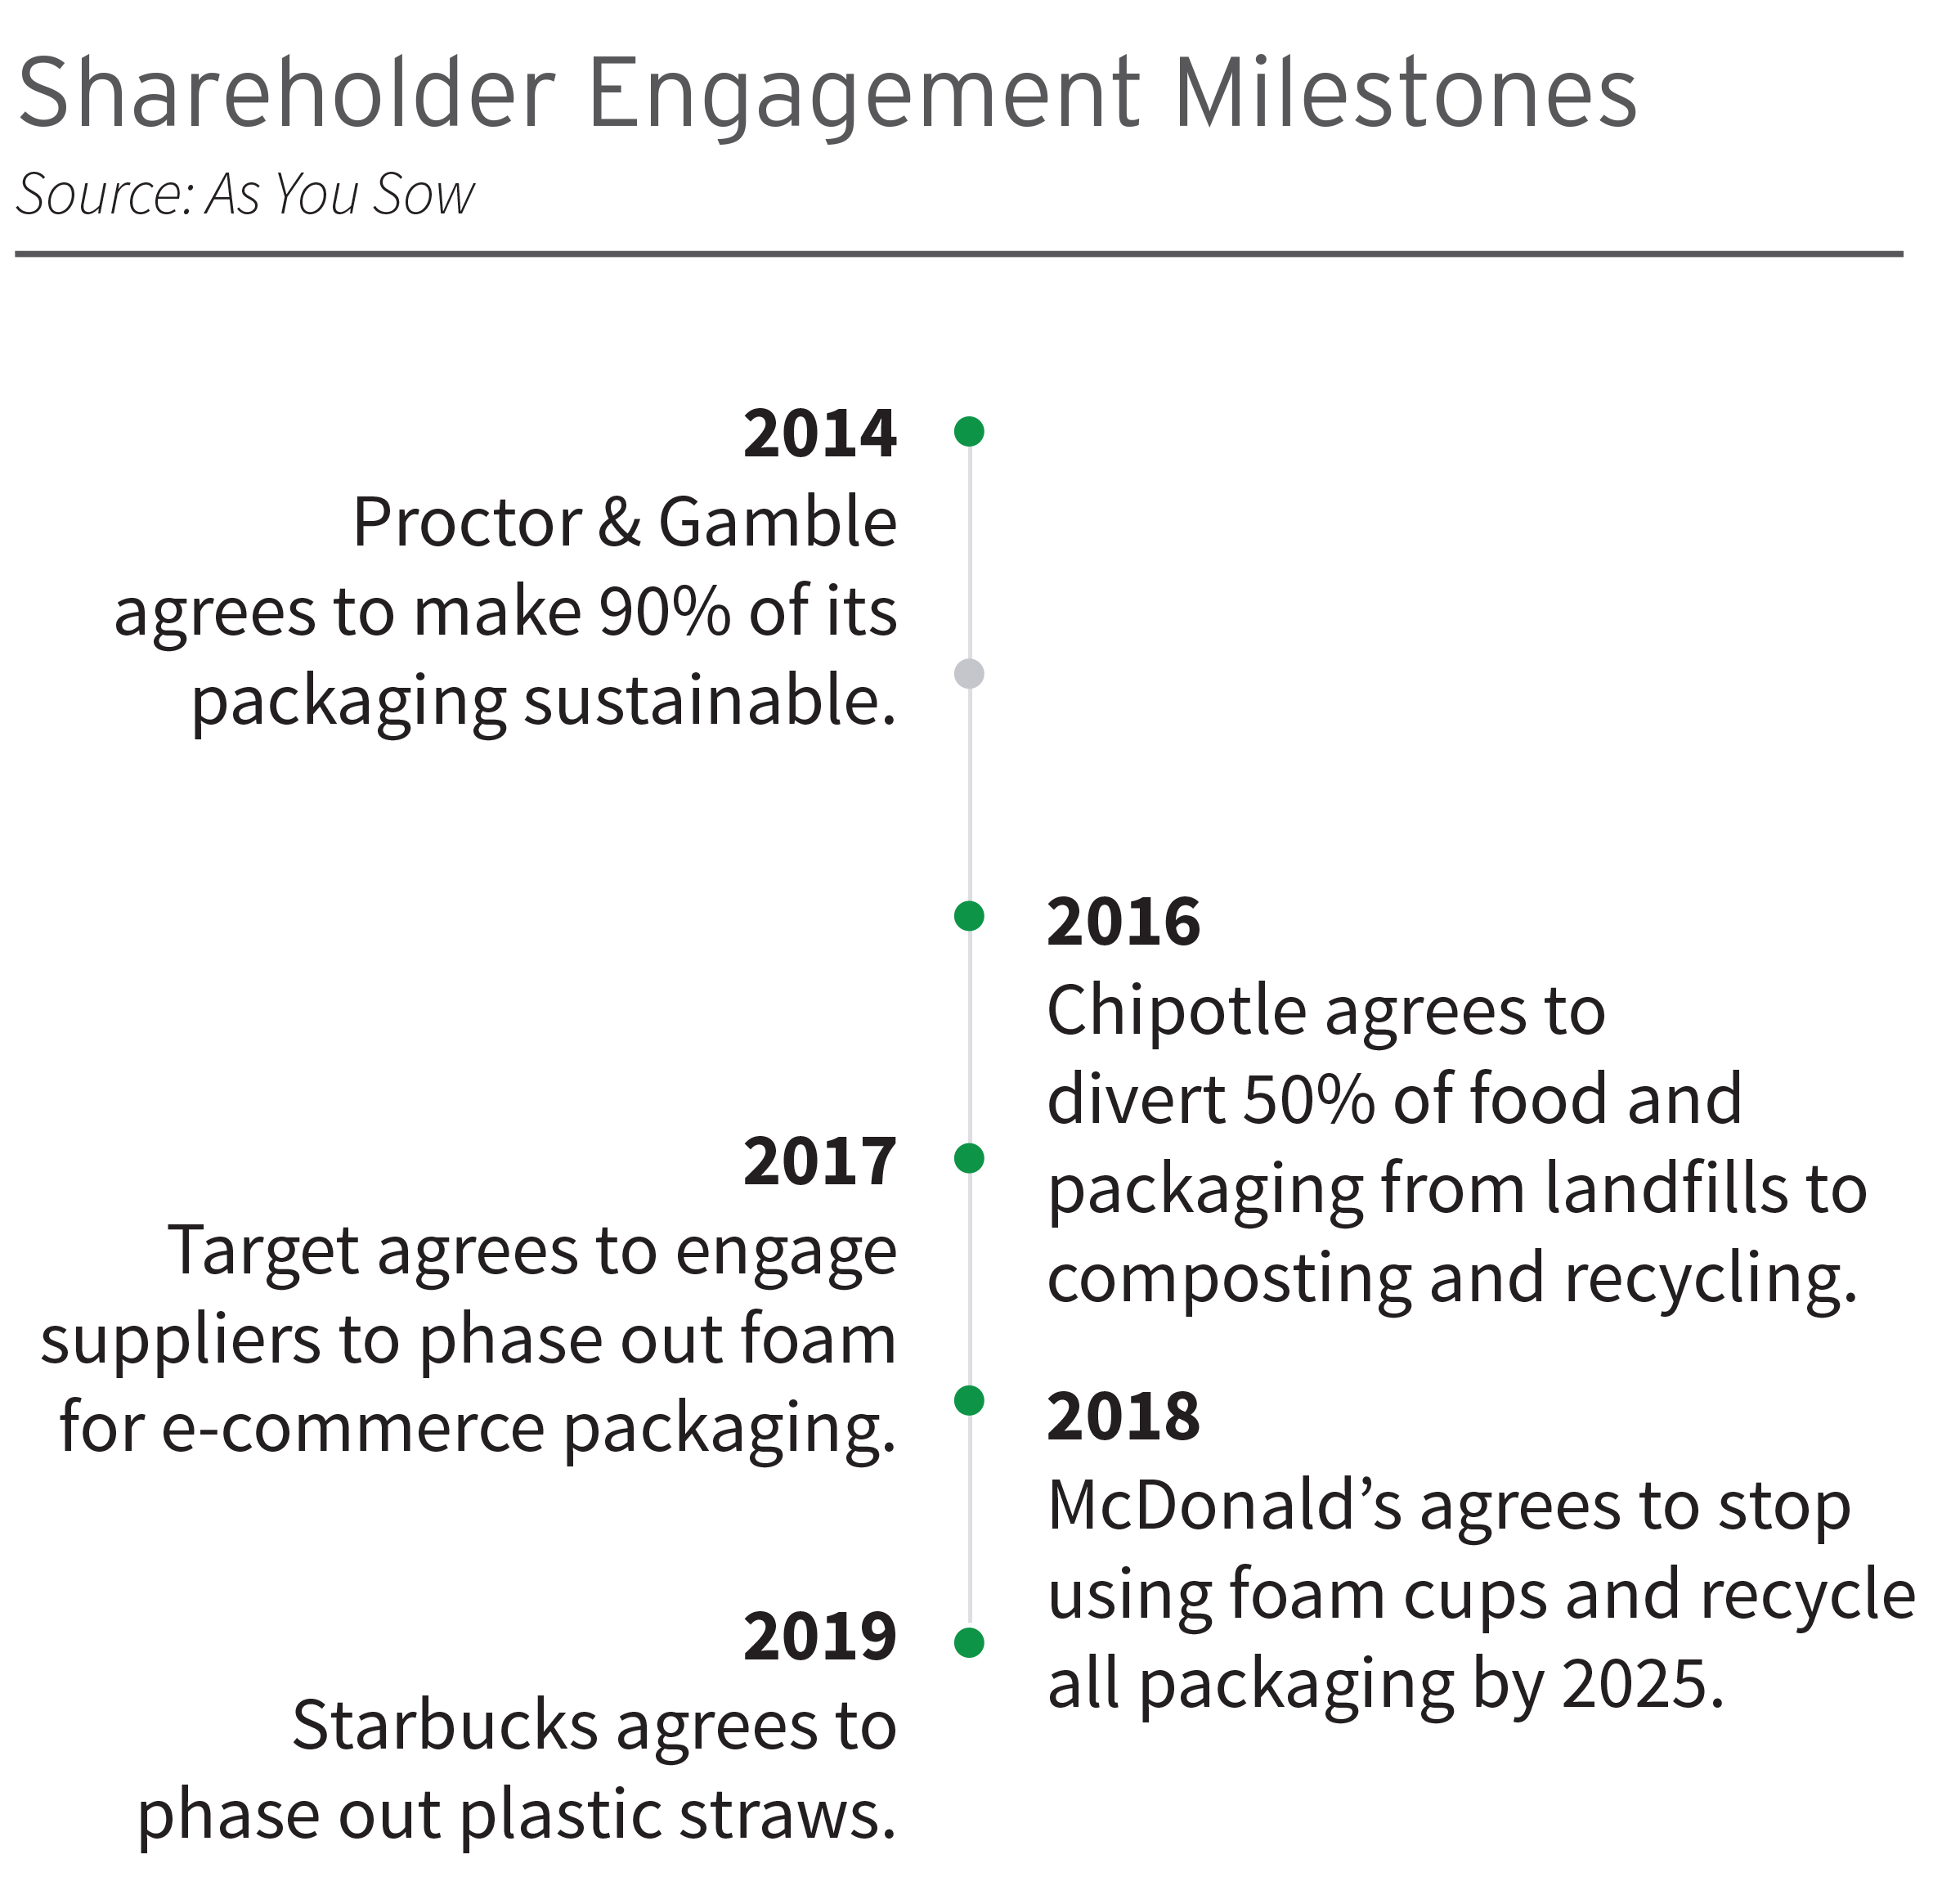 2014-2019 Shareholder Engagement Milestones - source- As You Sow